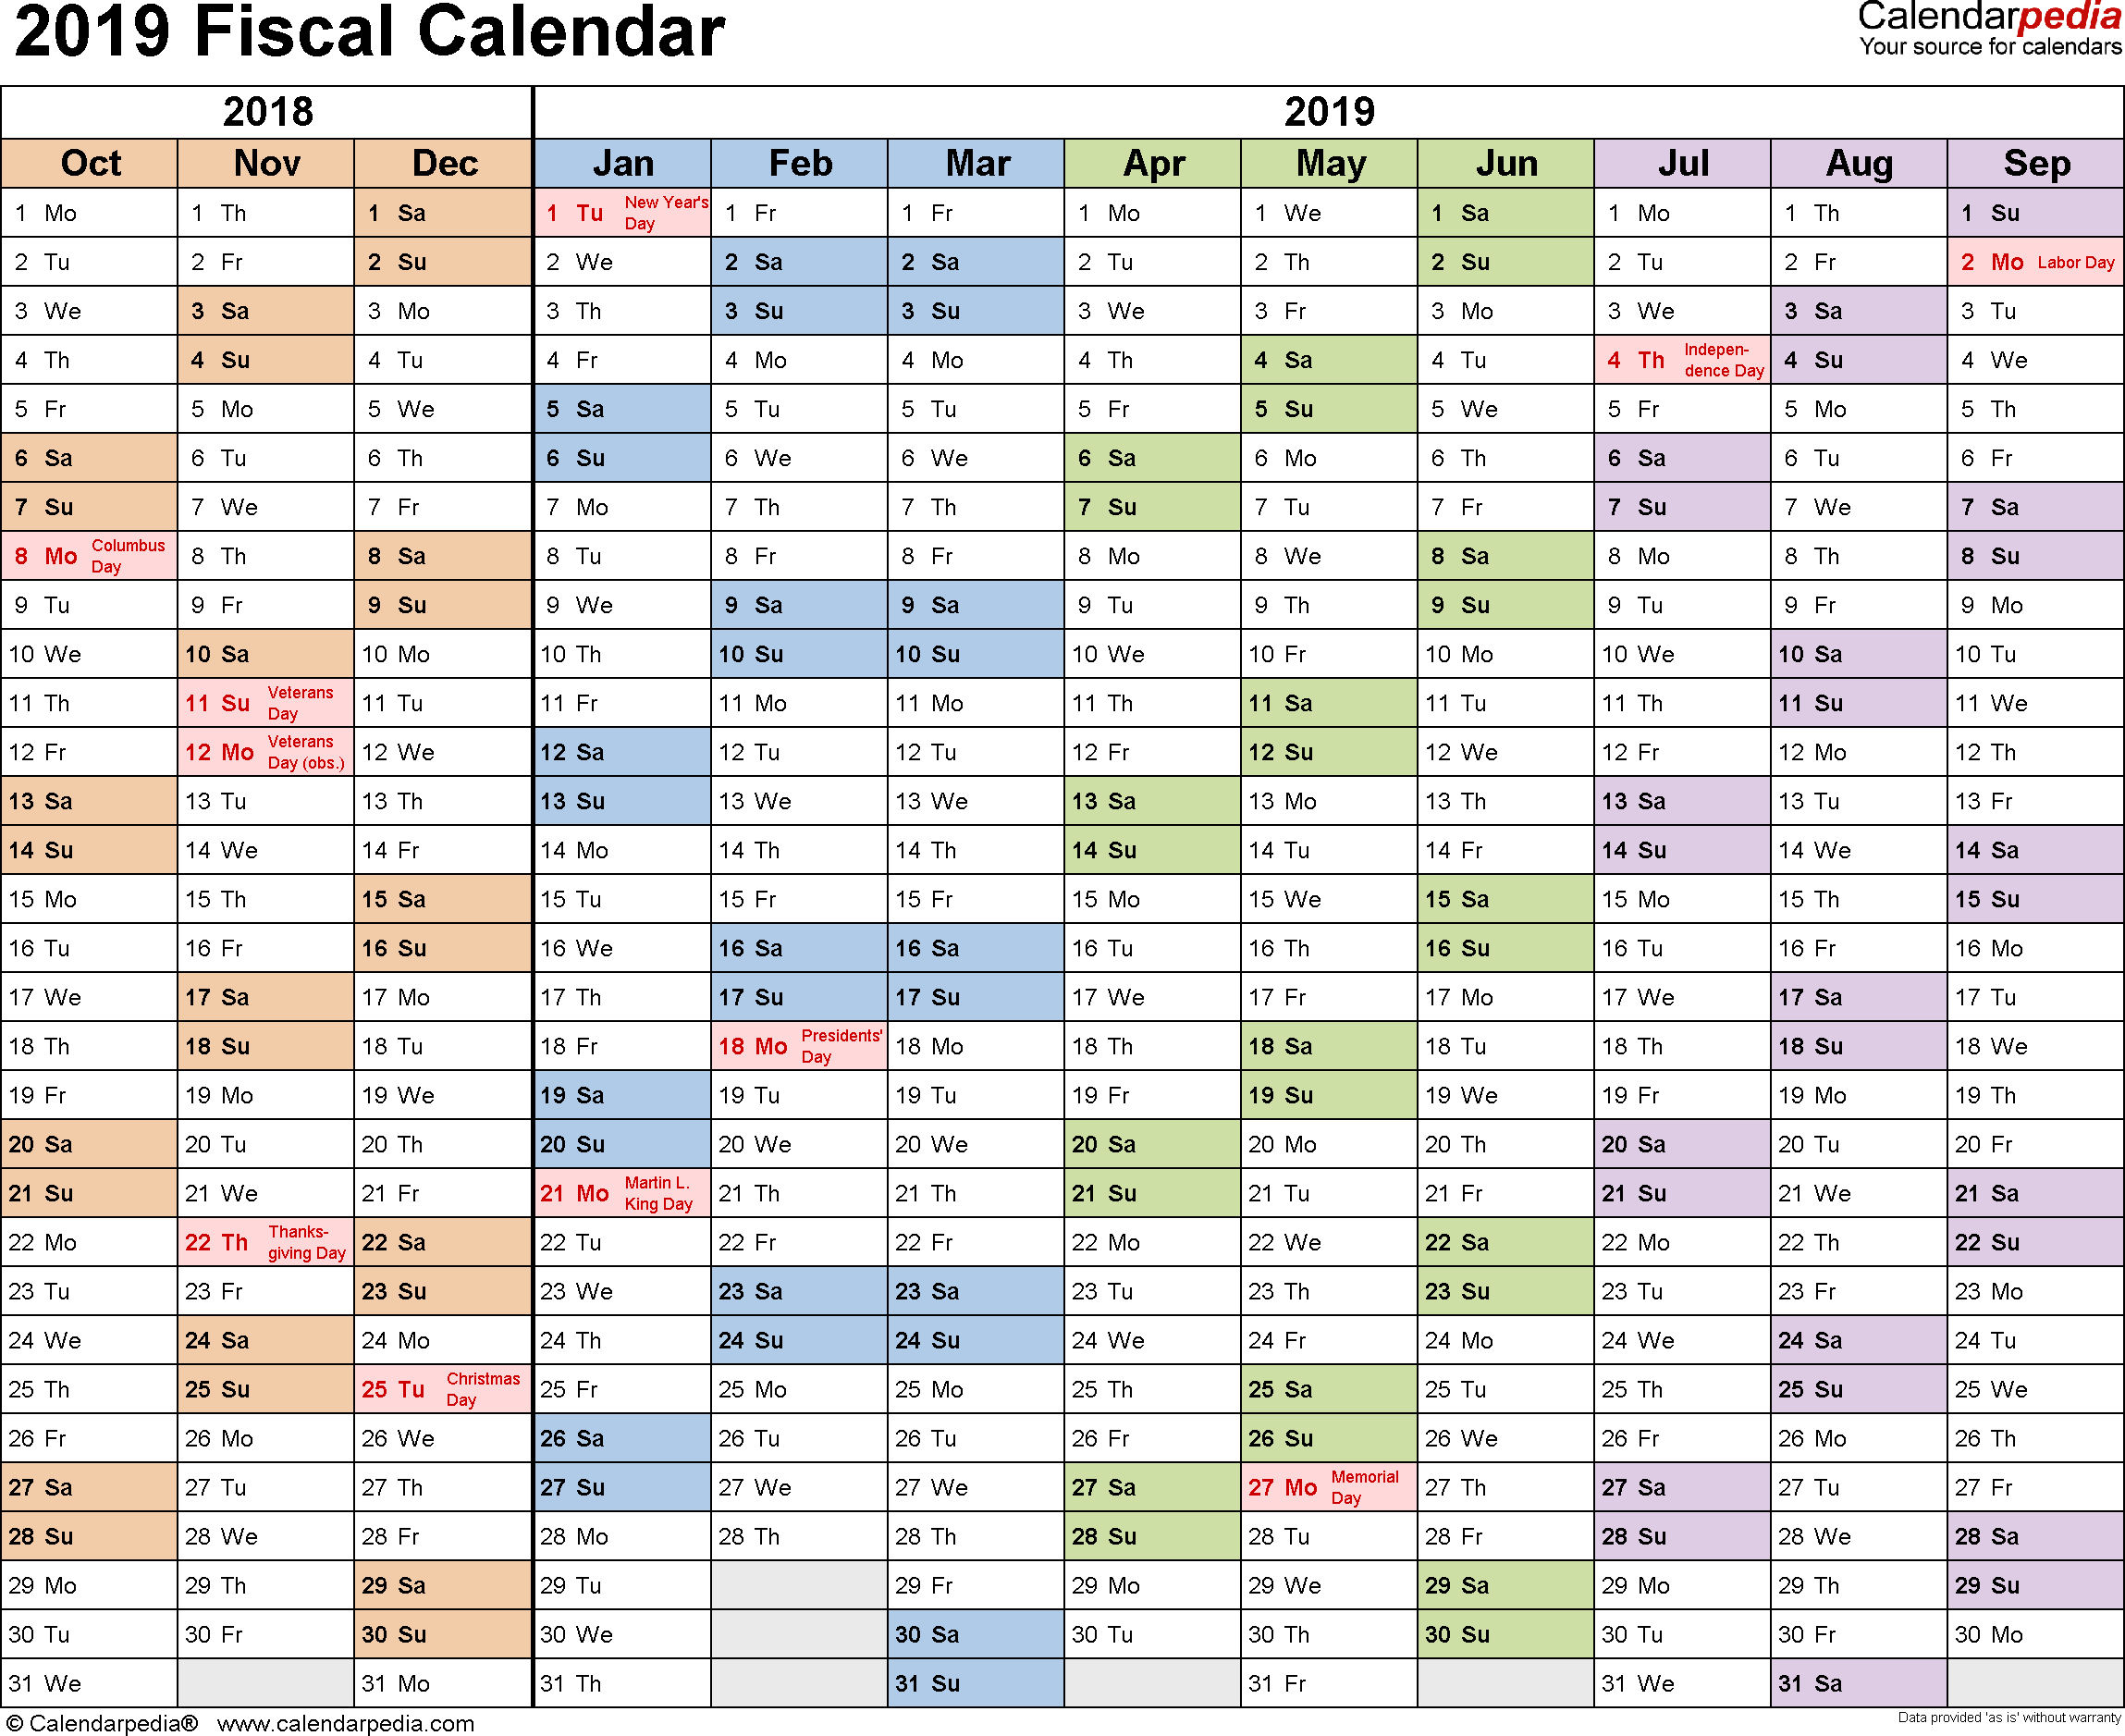 Fiscal Year 2019 Calendar Printable In 2020 Excel Calendar Fiscal Calendar Calendar Printables